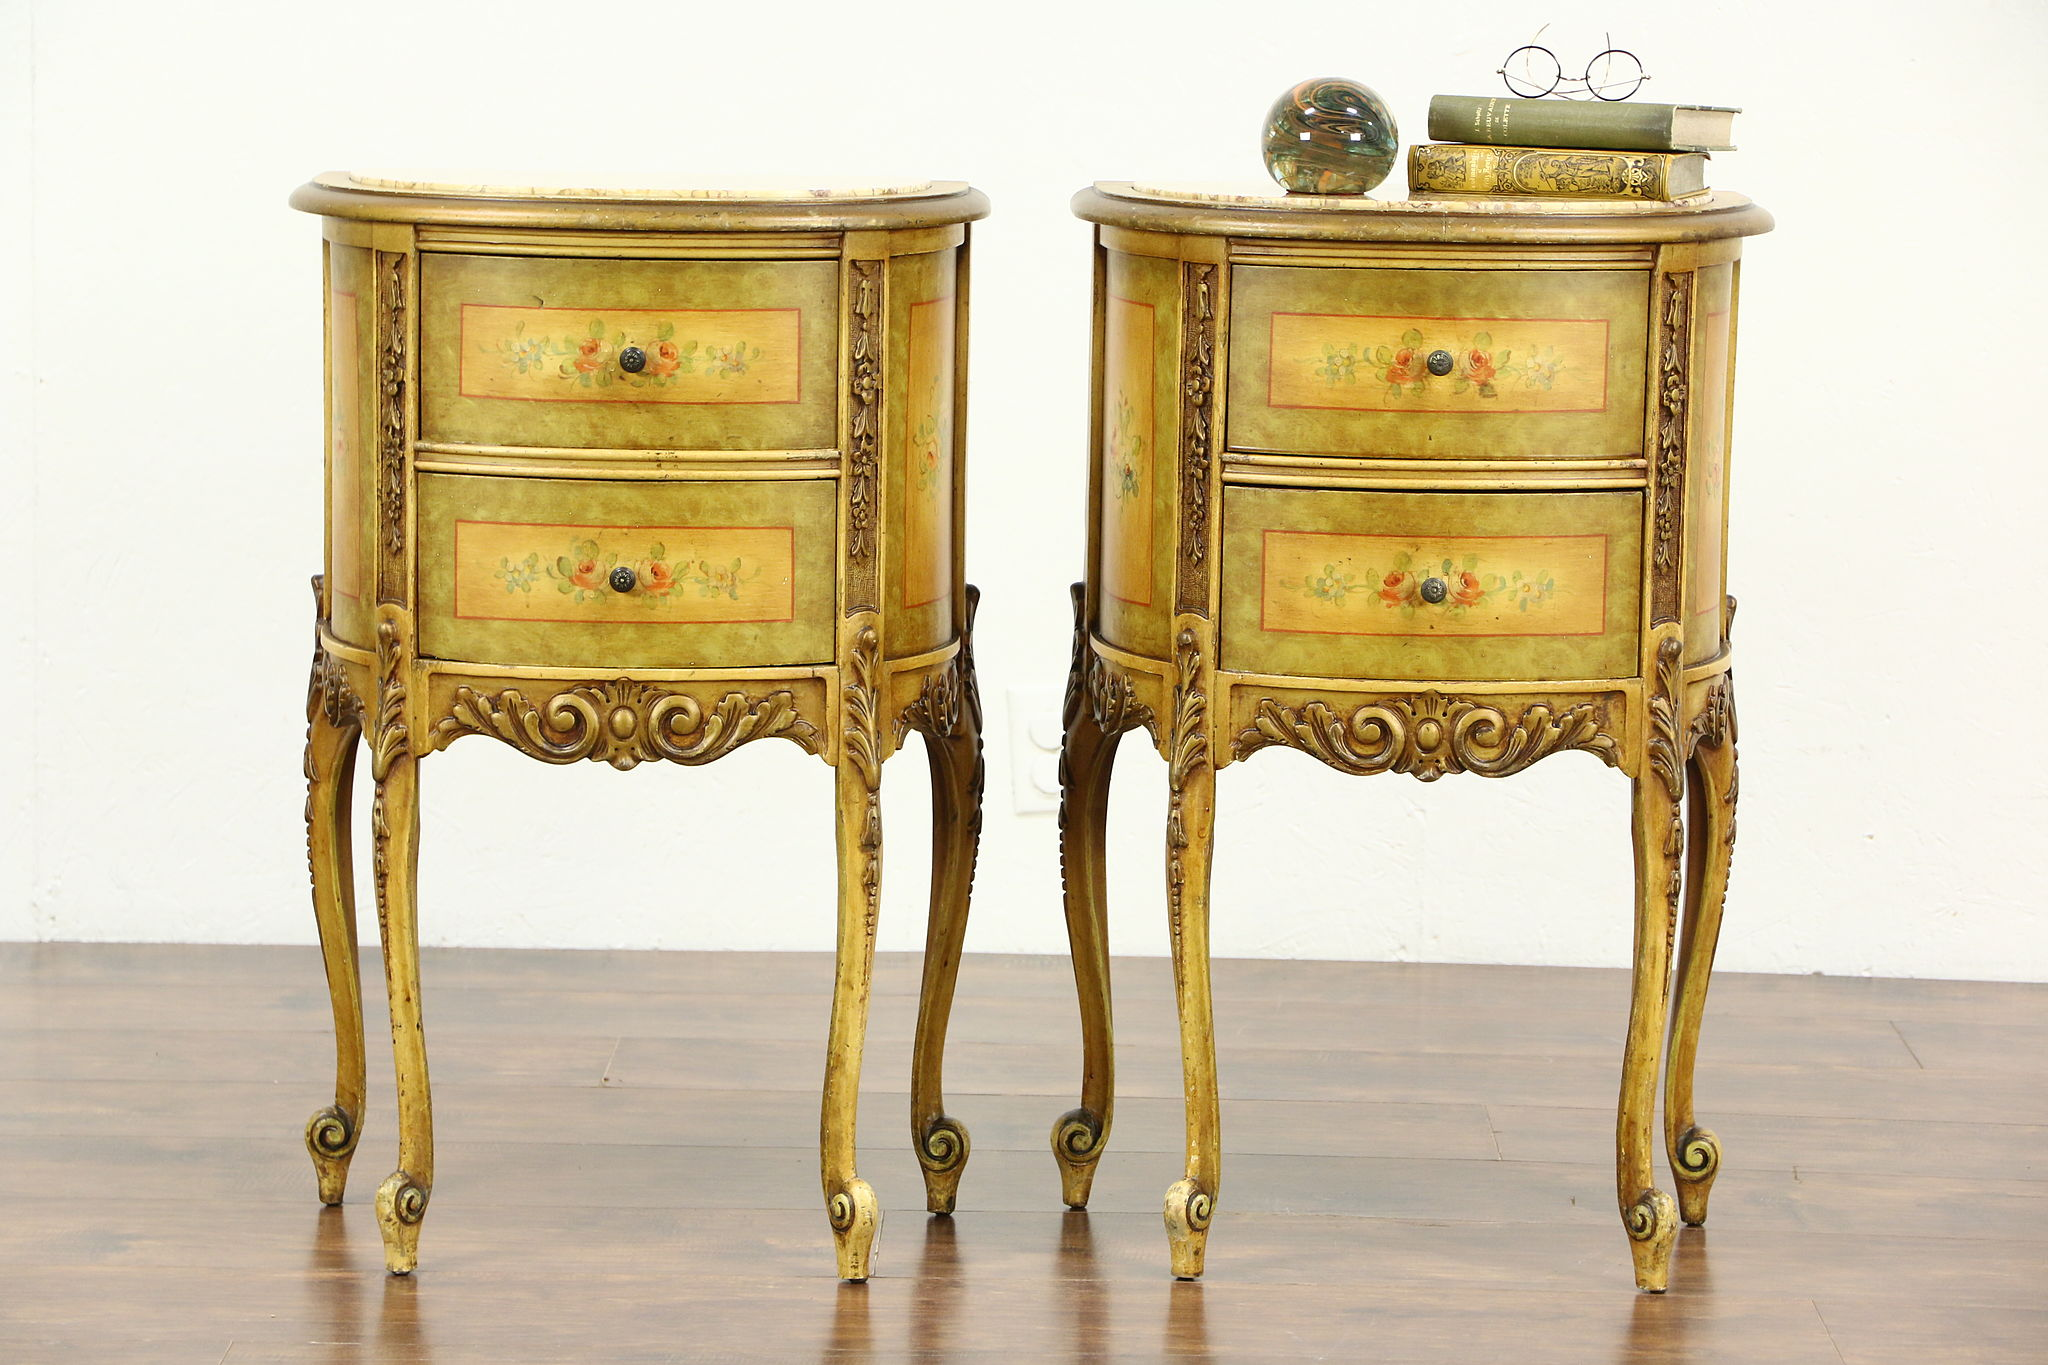 Sold Pair Of Marble Top 1930 S Vintage Hand Painted End Tables Or Nightstands Harp Gallery Antiques Furniture